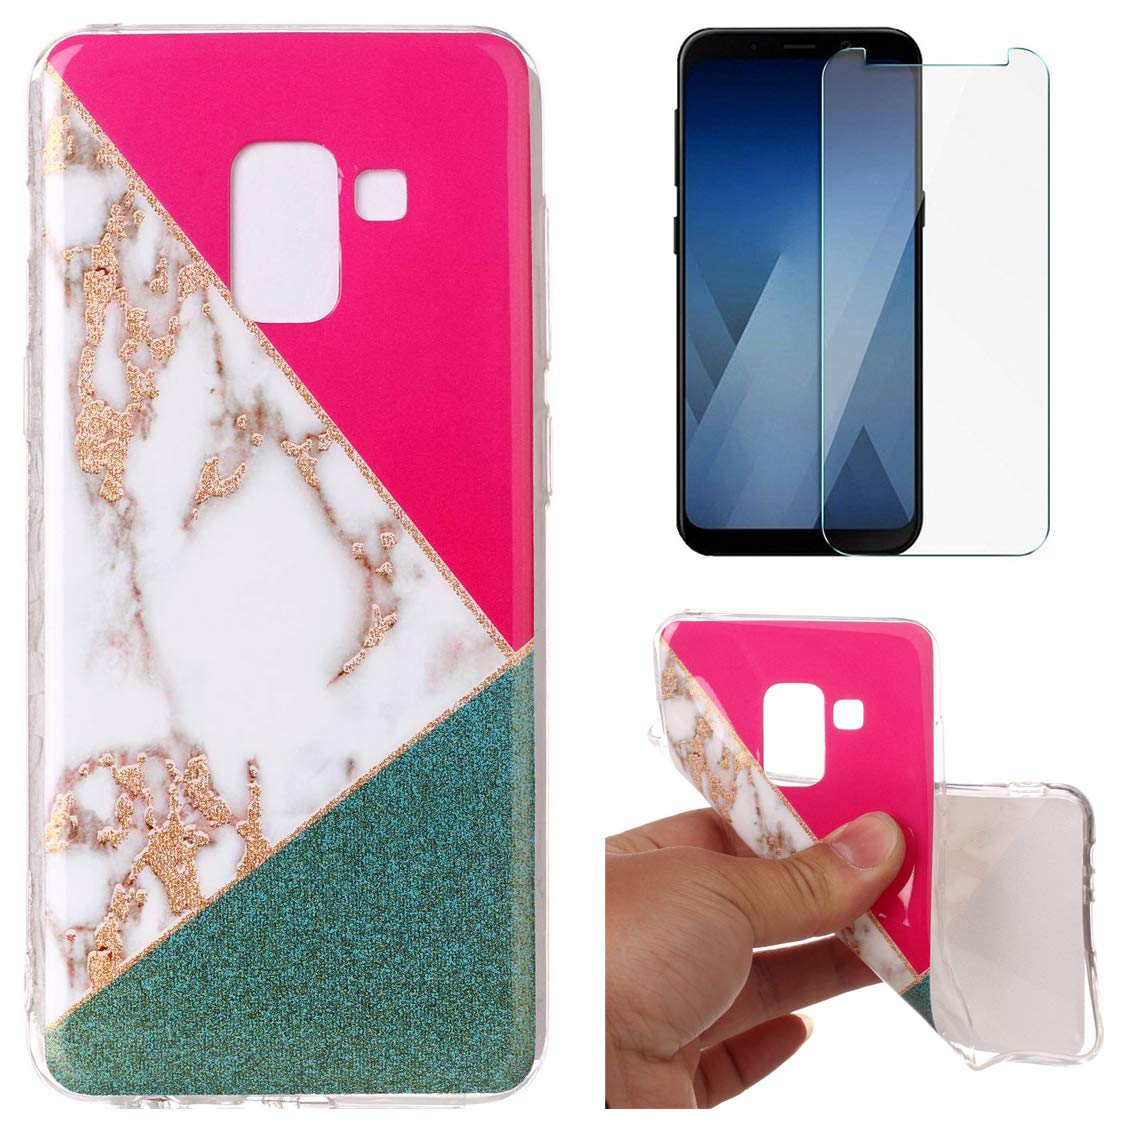 for Samsung Galaxy A8 2018 A530 Marble Case with Screen Protector, OYIME Creative Glossy Blue & Gold Marble Pattern Design Protective Bumper Soft Silicone Slim Thin Rubber Luxury Shockproof Cover